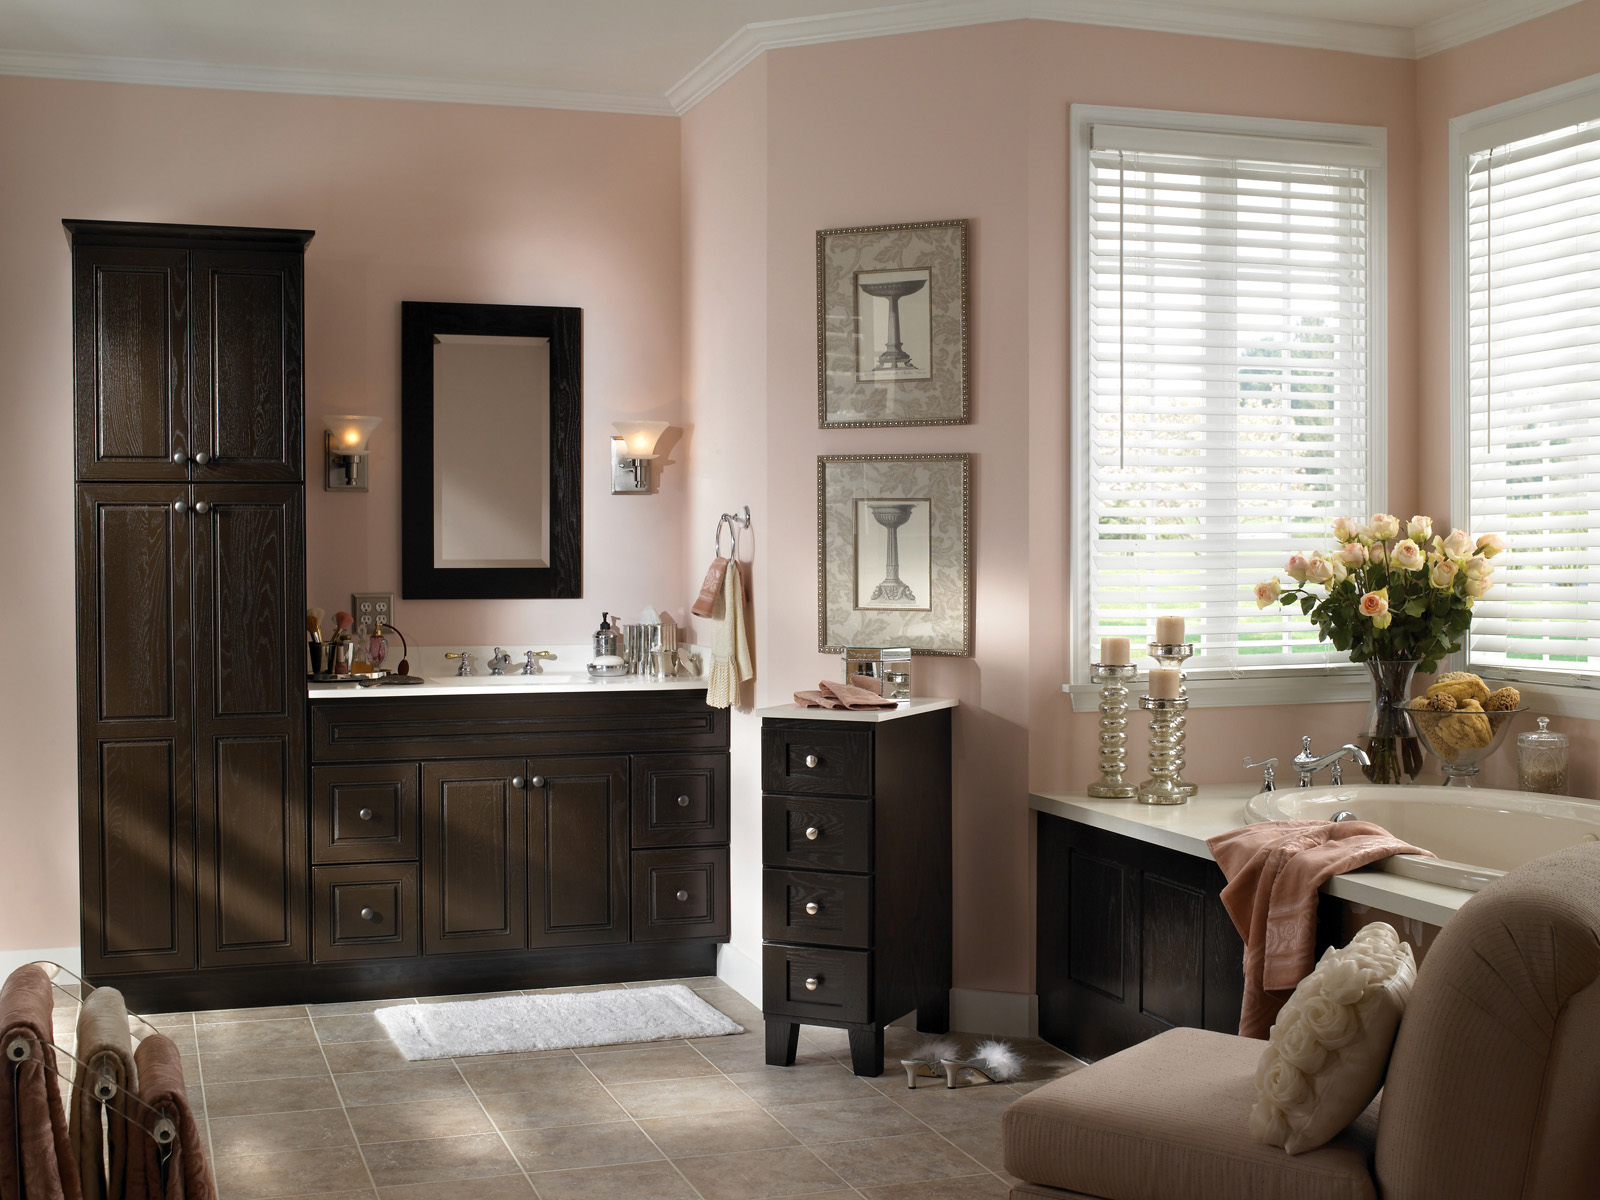 Bathroom Countertops  Adding Elegance and Style to Your Bathroom  RTA Cabinets